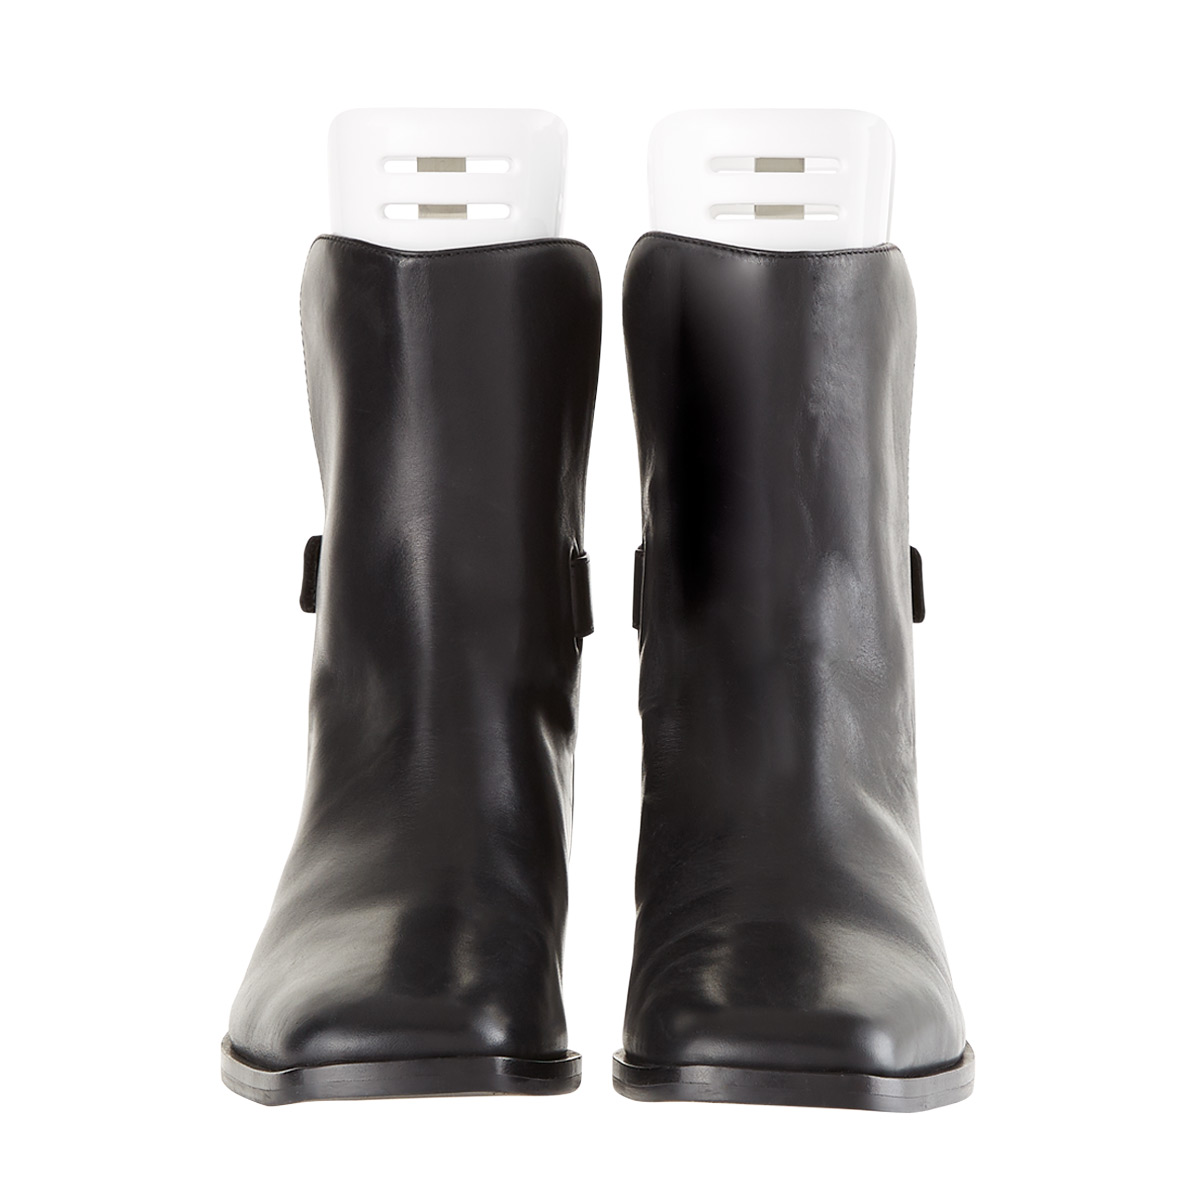 Other Home Cleaning Supplies New 1 Pair Boot Shaper Automatic Boots Home & Garden